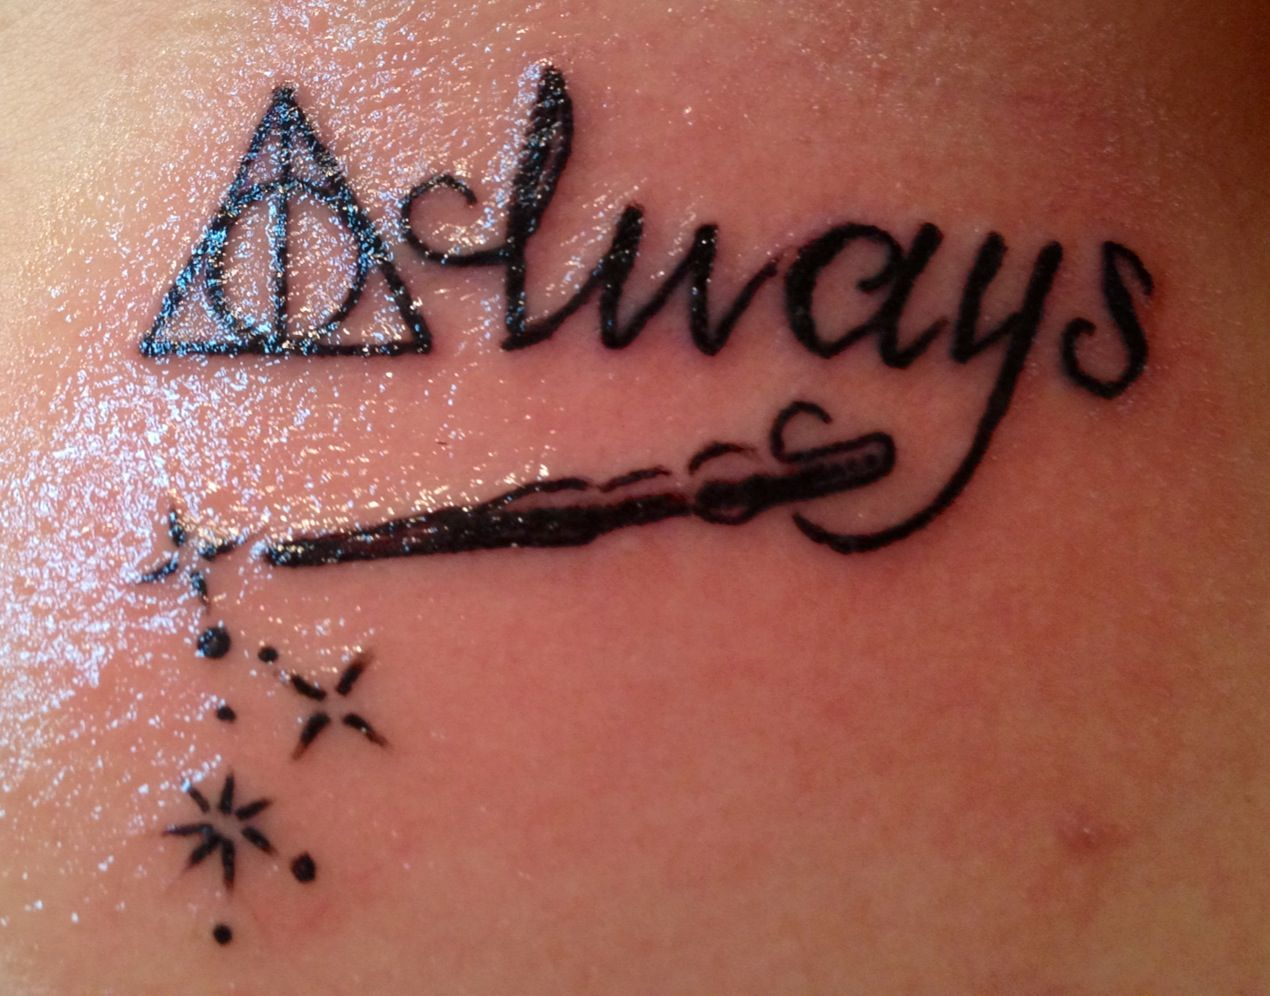 My daughters new body art. Deathly hallow symbol with always tattoo. Thanks Chris @ California Tattoo Company in Savannah